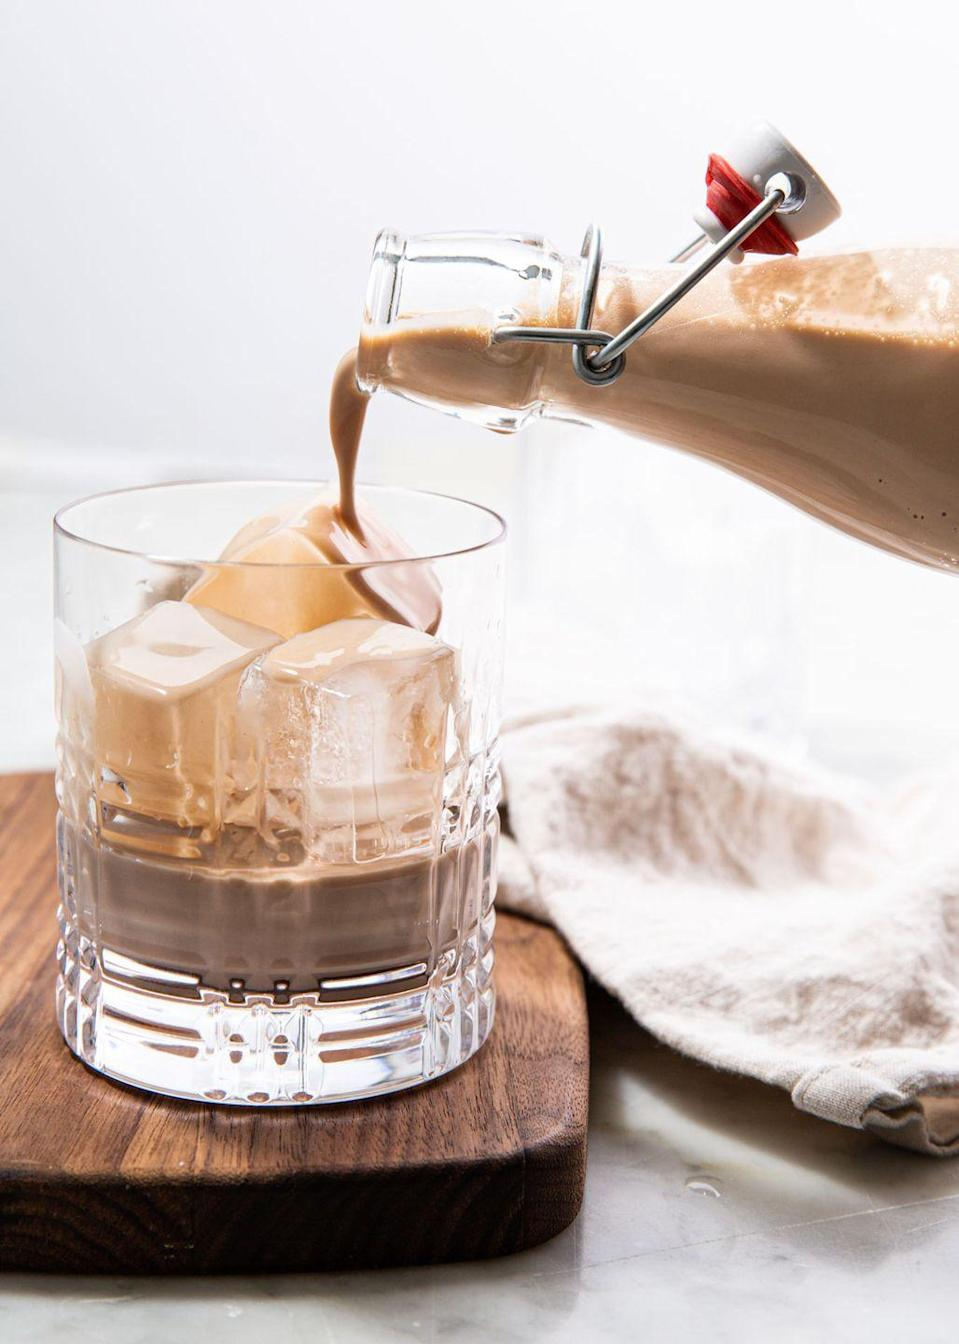 """<p>Forget about the store-bought stuff — you won't ever buy it again after making this!</p><p>Get the recipe from <a href=""""https://www.delish.com/cooking/recipe-ideas/a30778206/homemade-baileys-irish-cream-recipe/"""" rel=""""nofollow noopener"""" target=""""_blank"""" data-ylk=""""slk:Delish."""" class=""""link rapid-noclick-resp"""">Delish. </a></p>"""